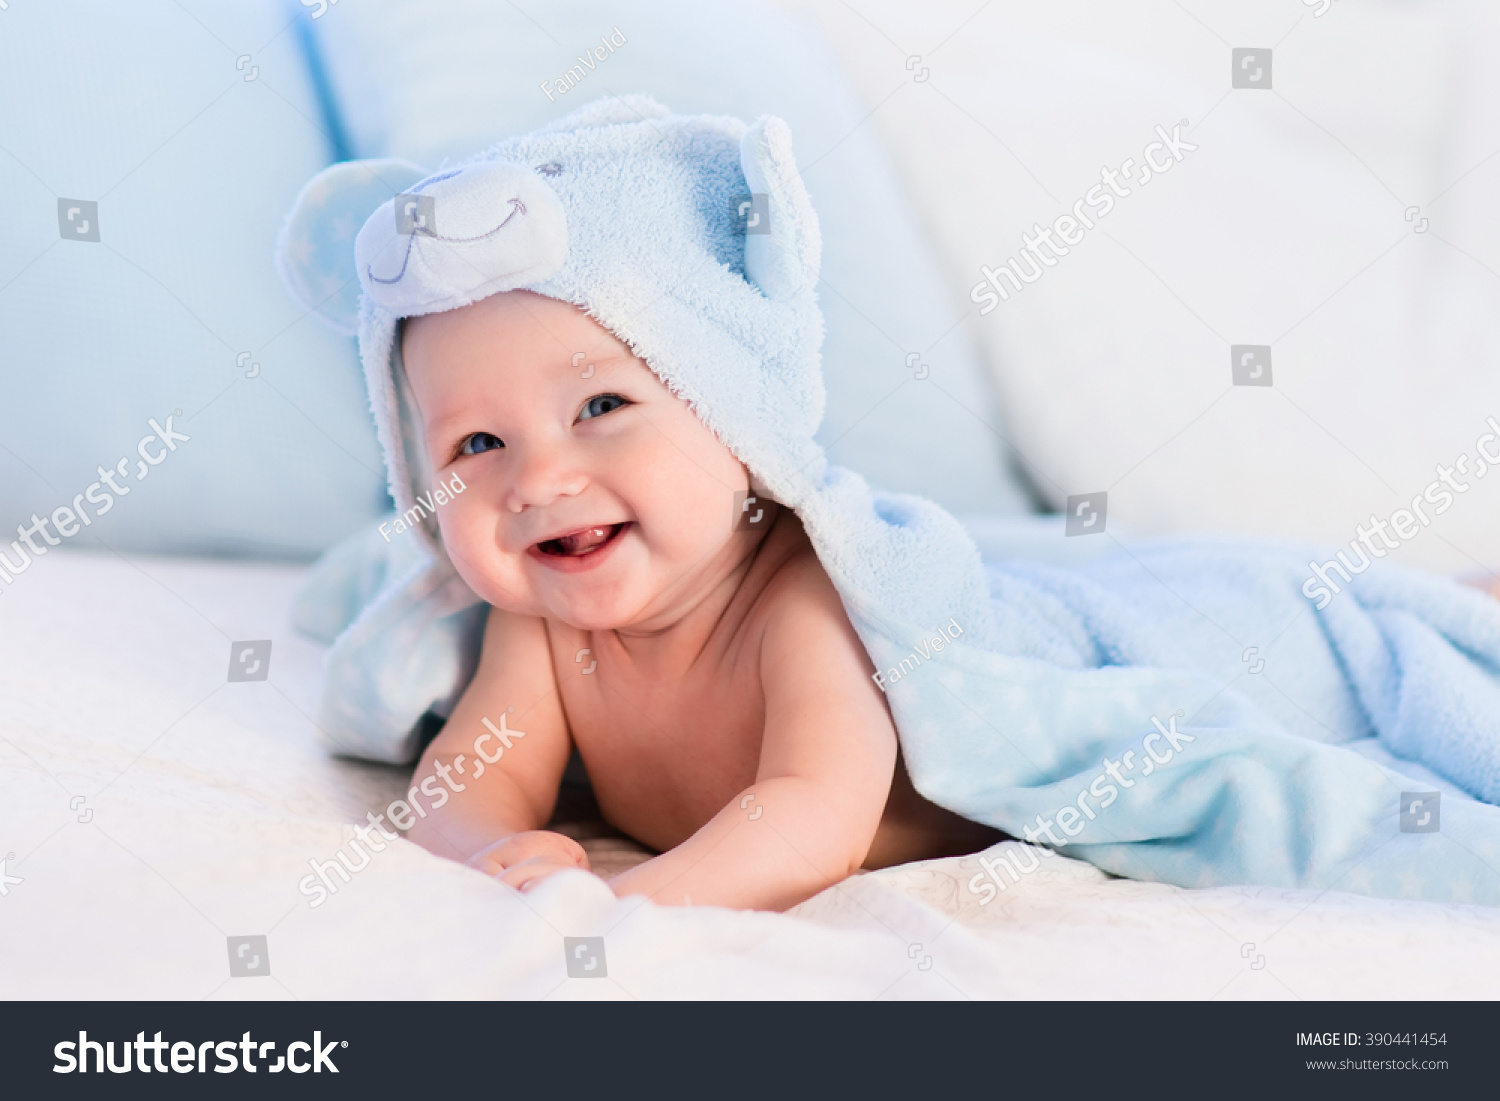 Baby Boy Wearing Diaper Blue Towel Stock Photo 390441454 ...